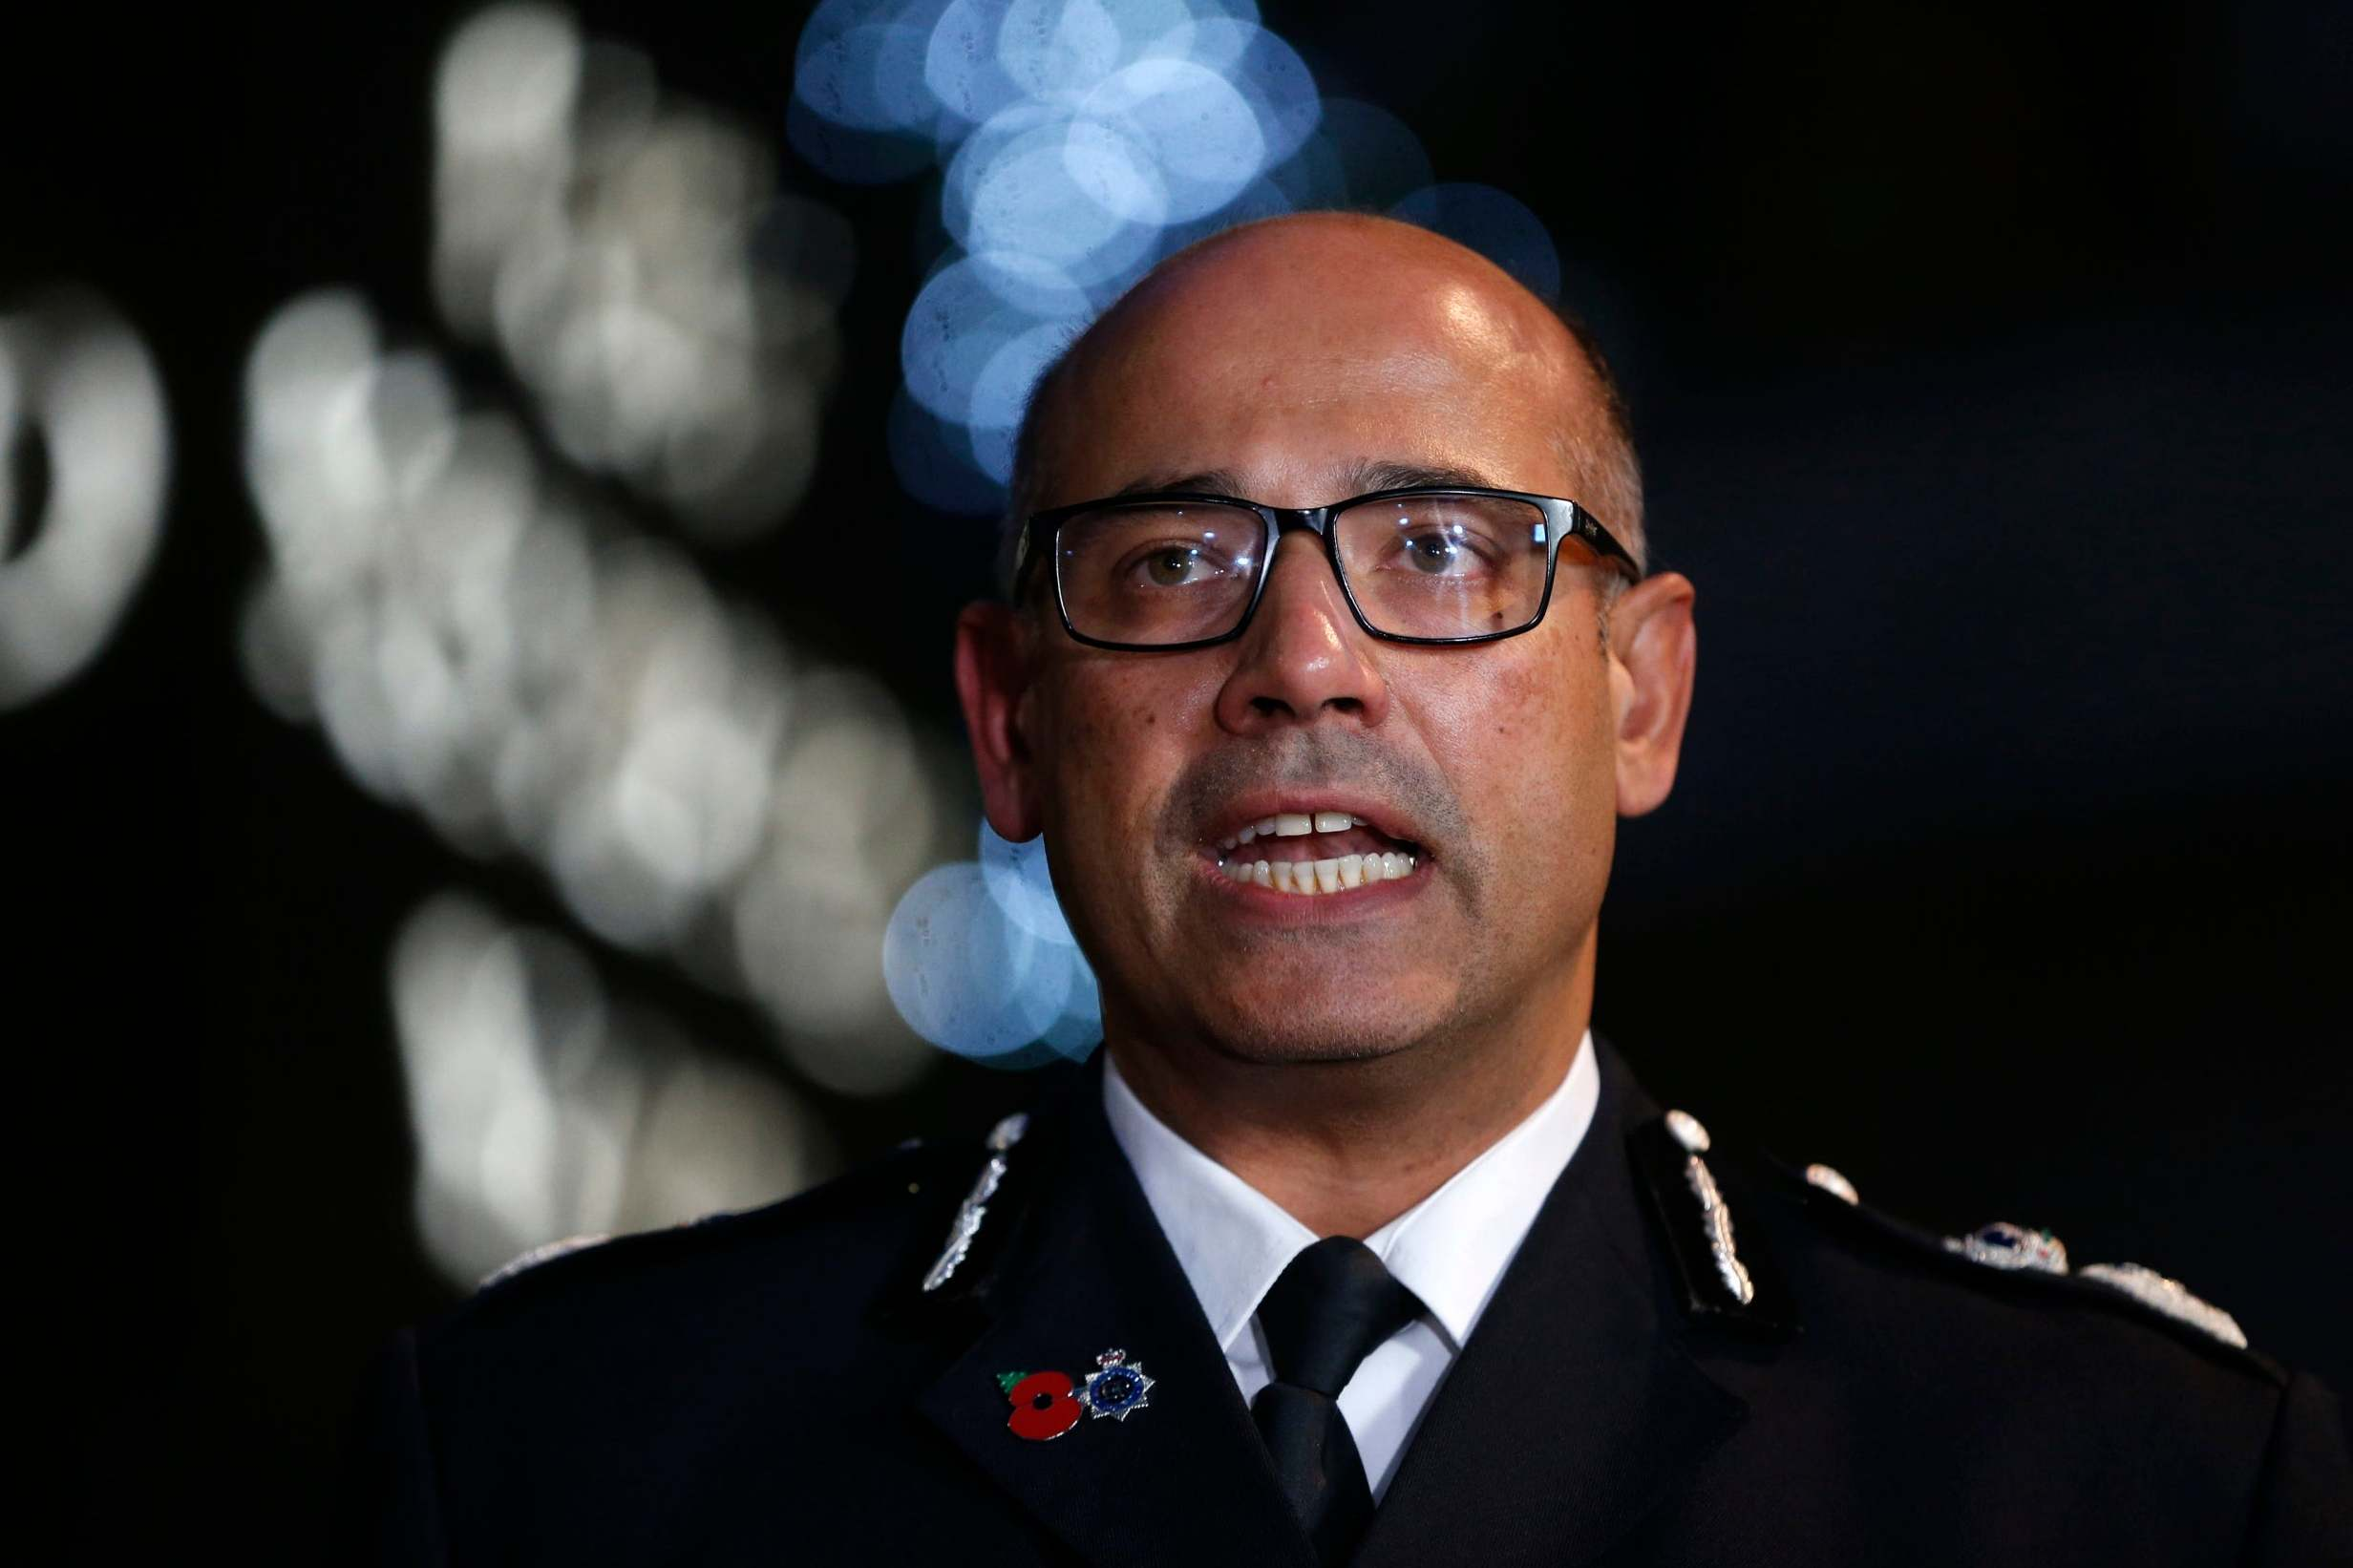 Britain's chance of reducing terrorist violence risks being damaged